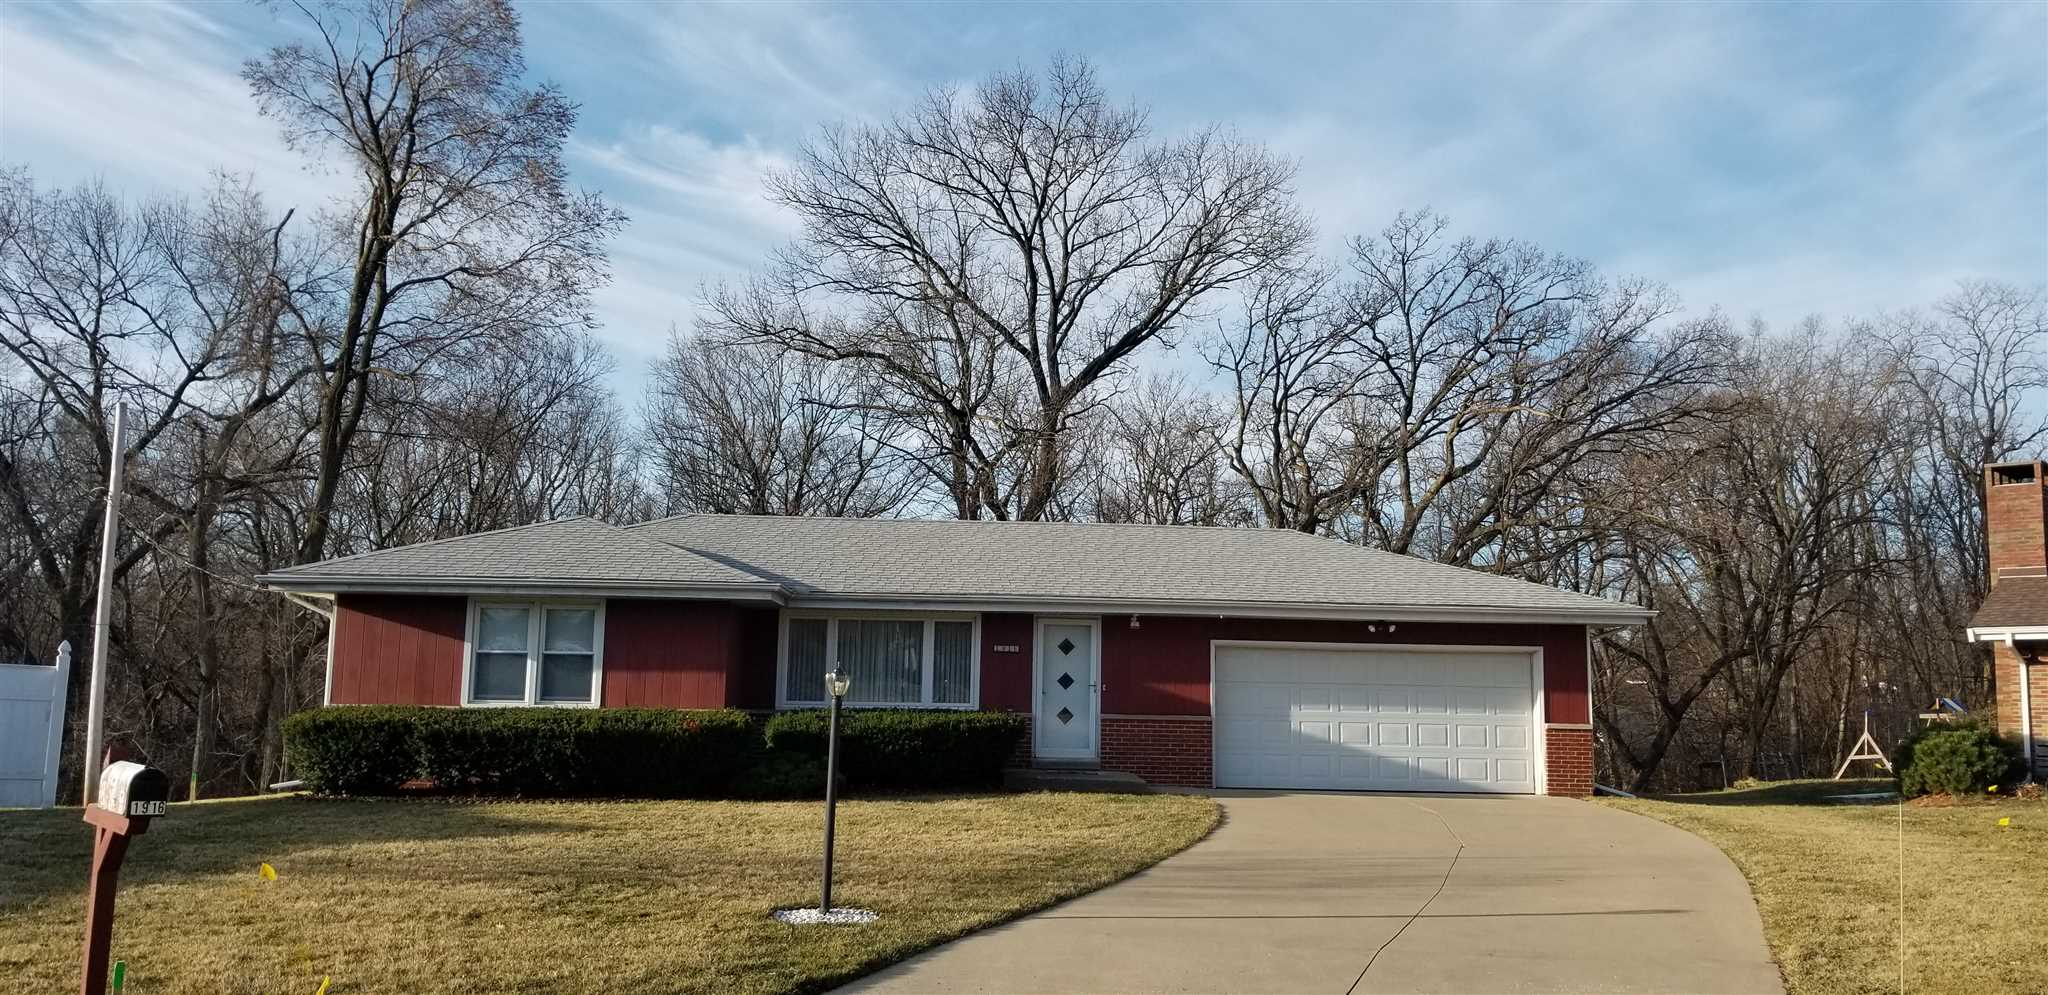 1916 S GREENWOOD Property Photo - Peoria, IL real estate listing